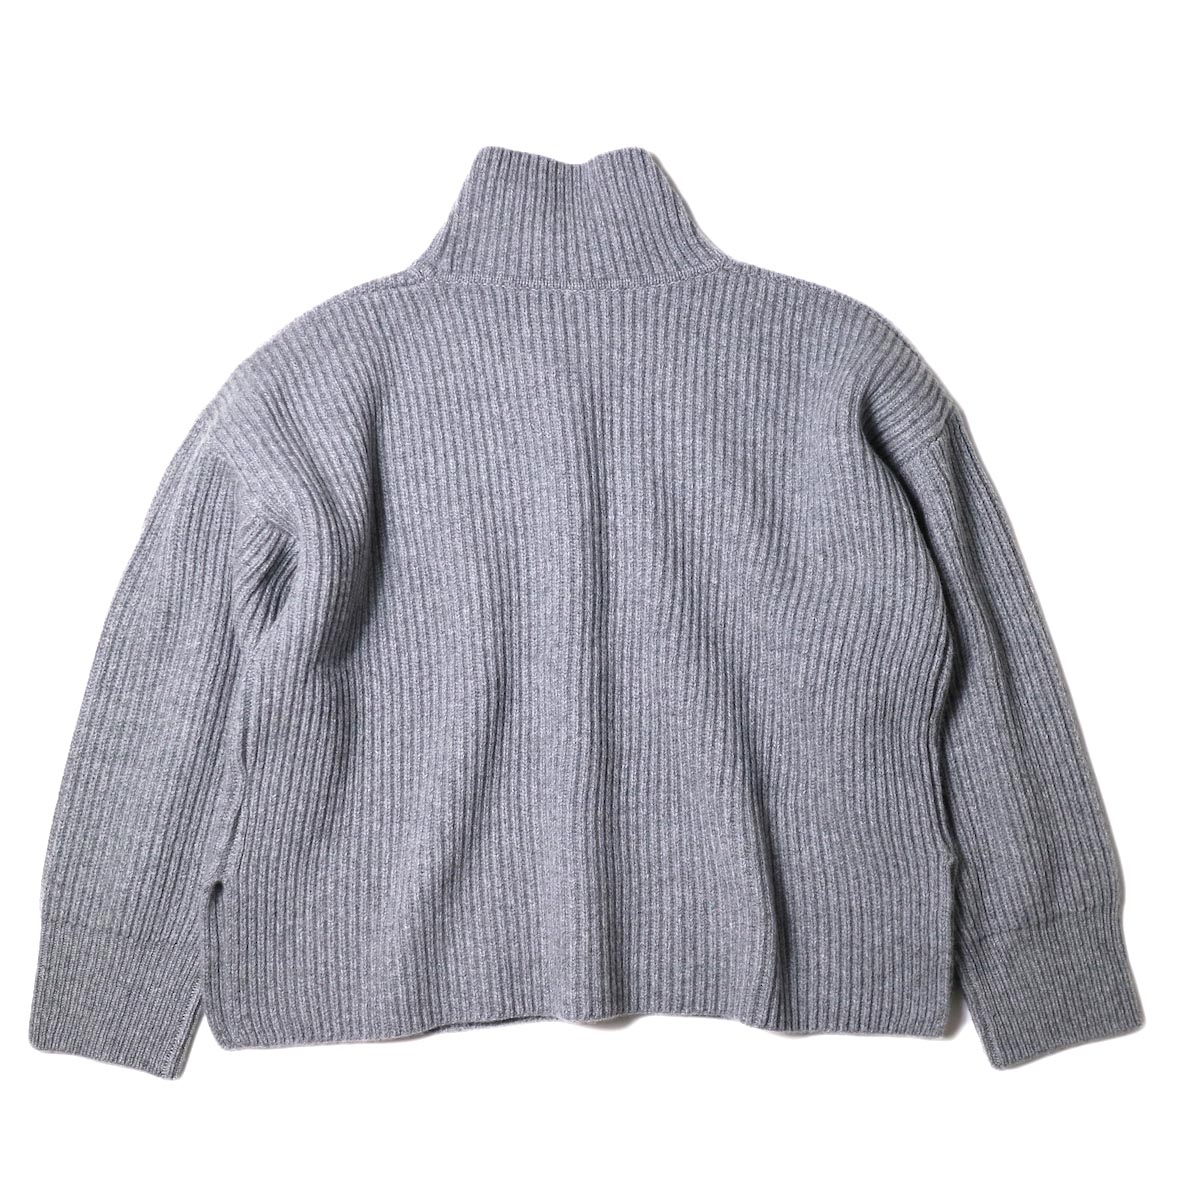 YLEVE / EXTRAFINE MERINO WOOL RIB KN TURTLE (grey) 背面